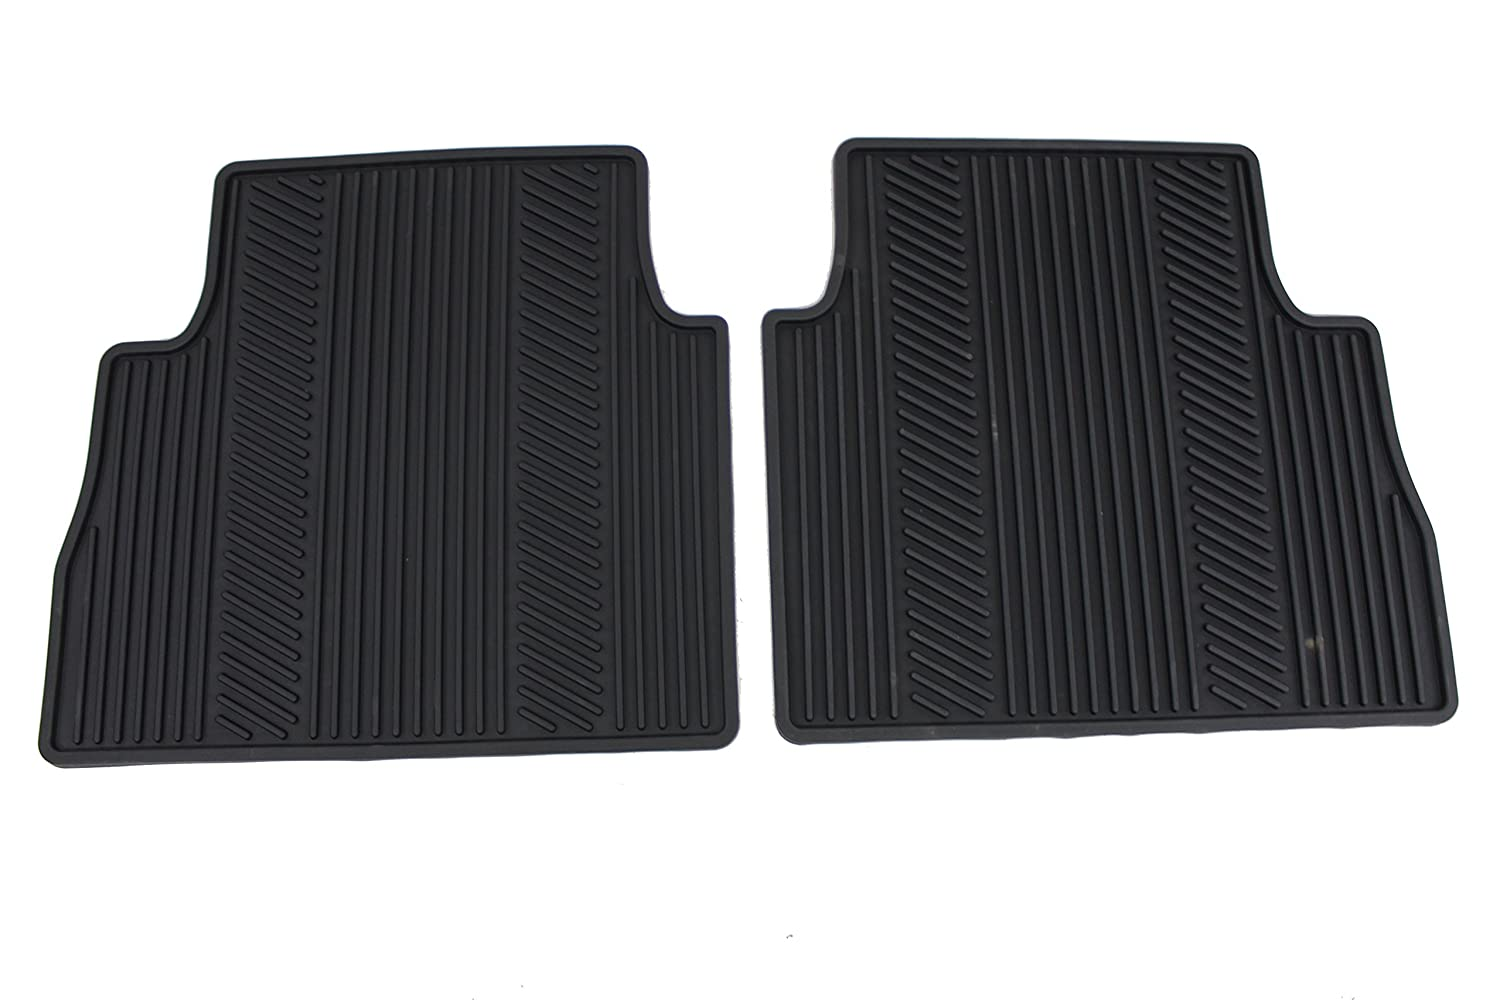 Rubber floor mats kia sorento - Amazon Com Genuine Kia Accessories 1uf13 Ac000 1st And 2nd Row All Weather Floor Mat For Select Sorento Models Automotive